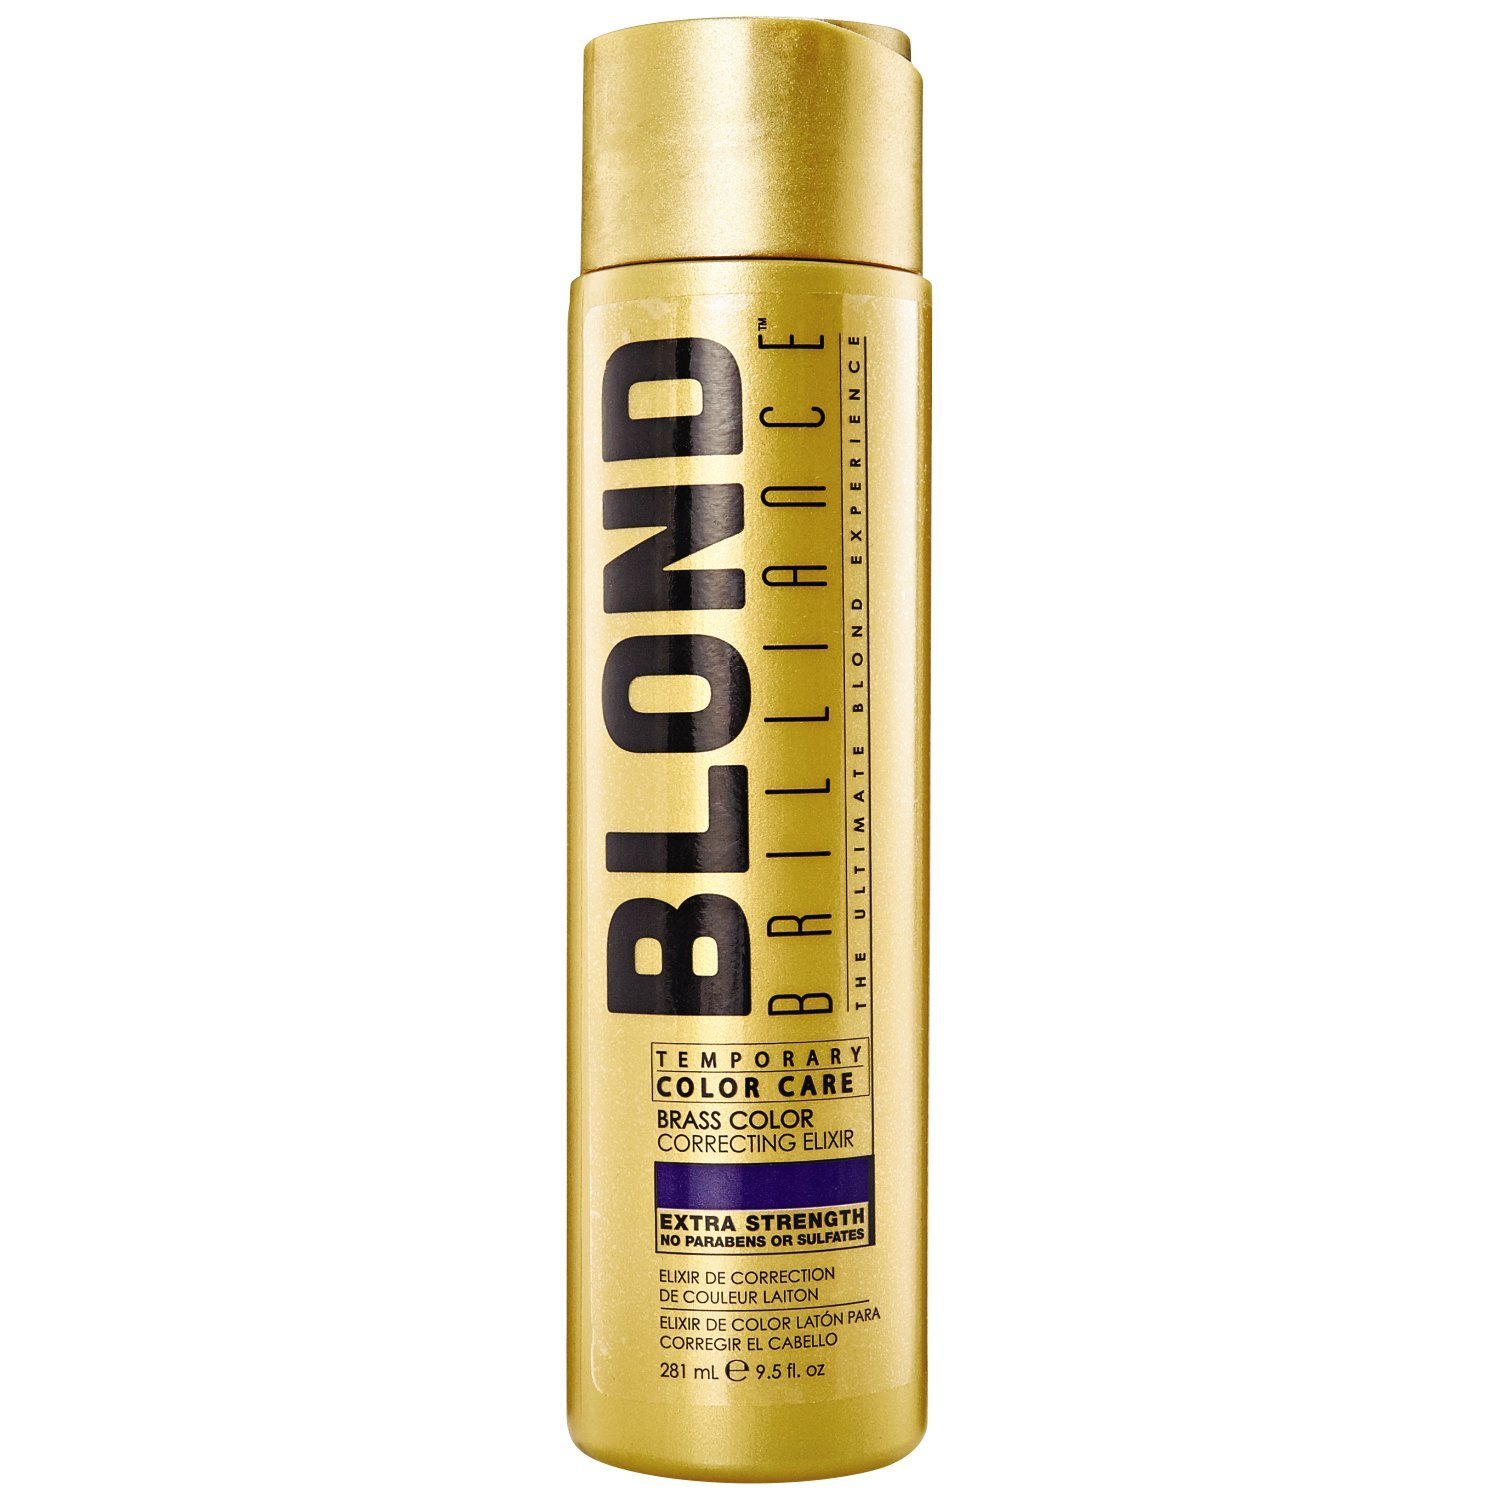 Blond Brilliance Brass Color Correcting Elixir